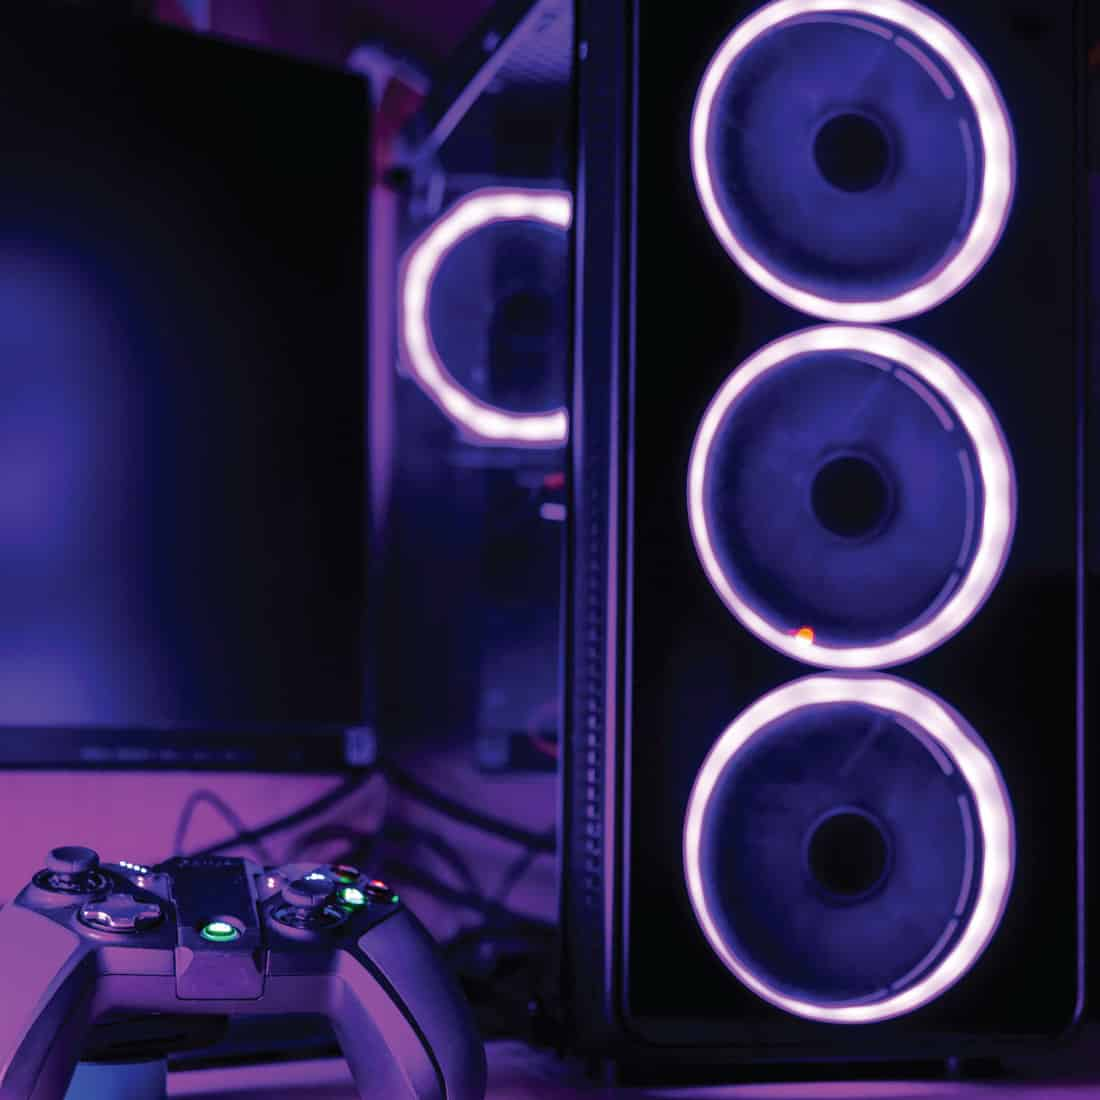 Close up of a gaming PC case and game pad with pink lighting